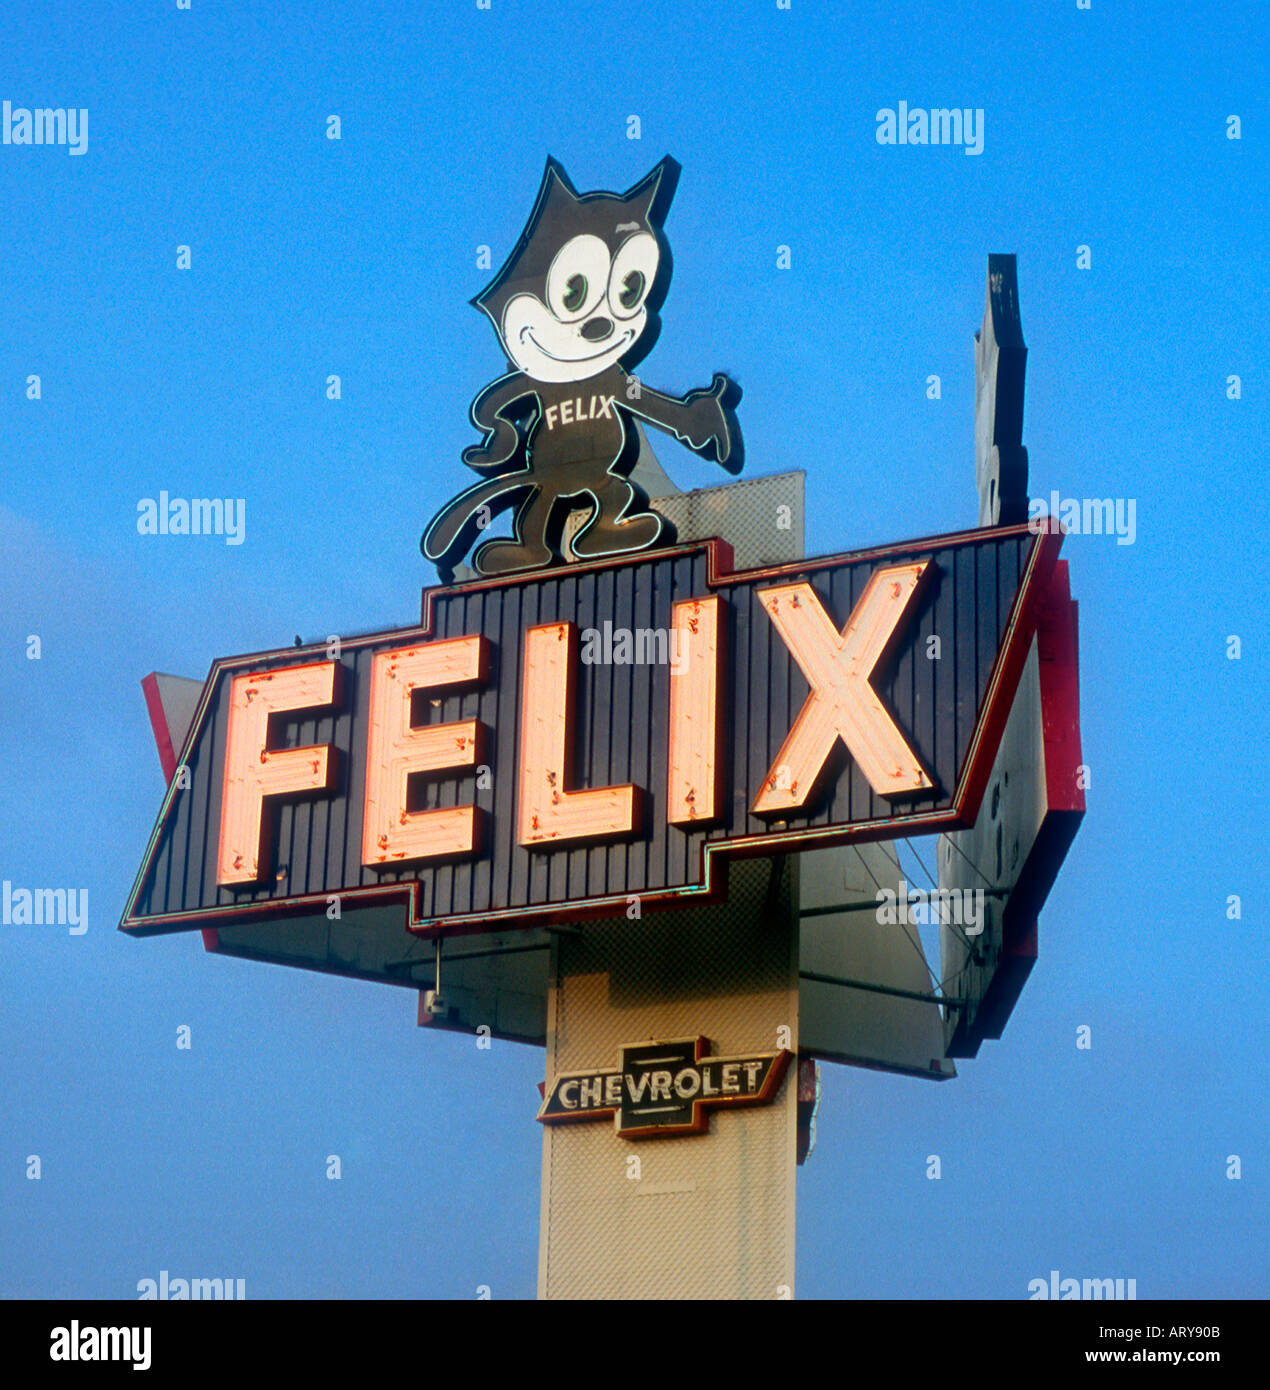 Felix Chevrolet Sign For An Auto Dealer In Los Angeles California   Stock  Image